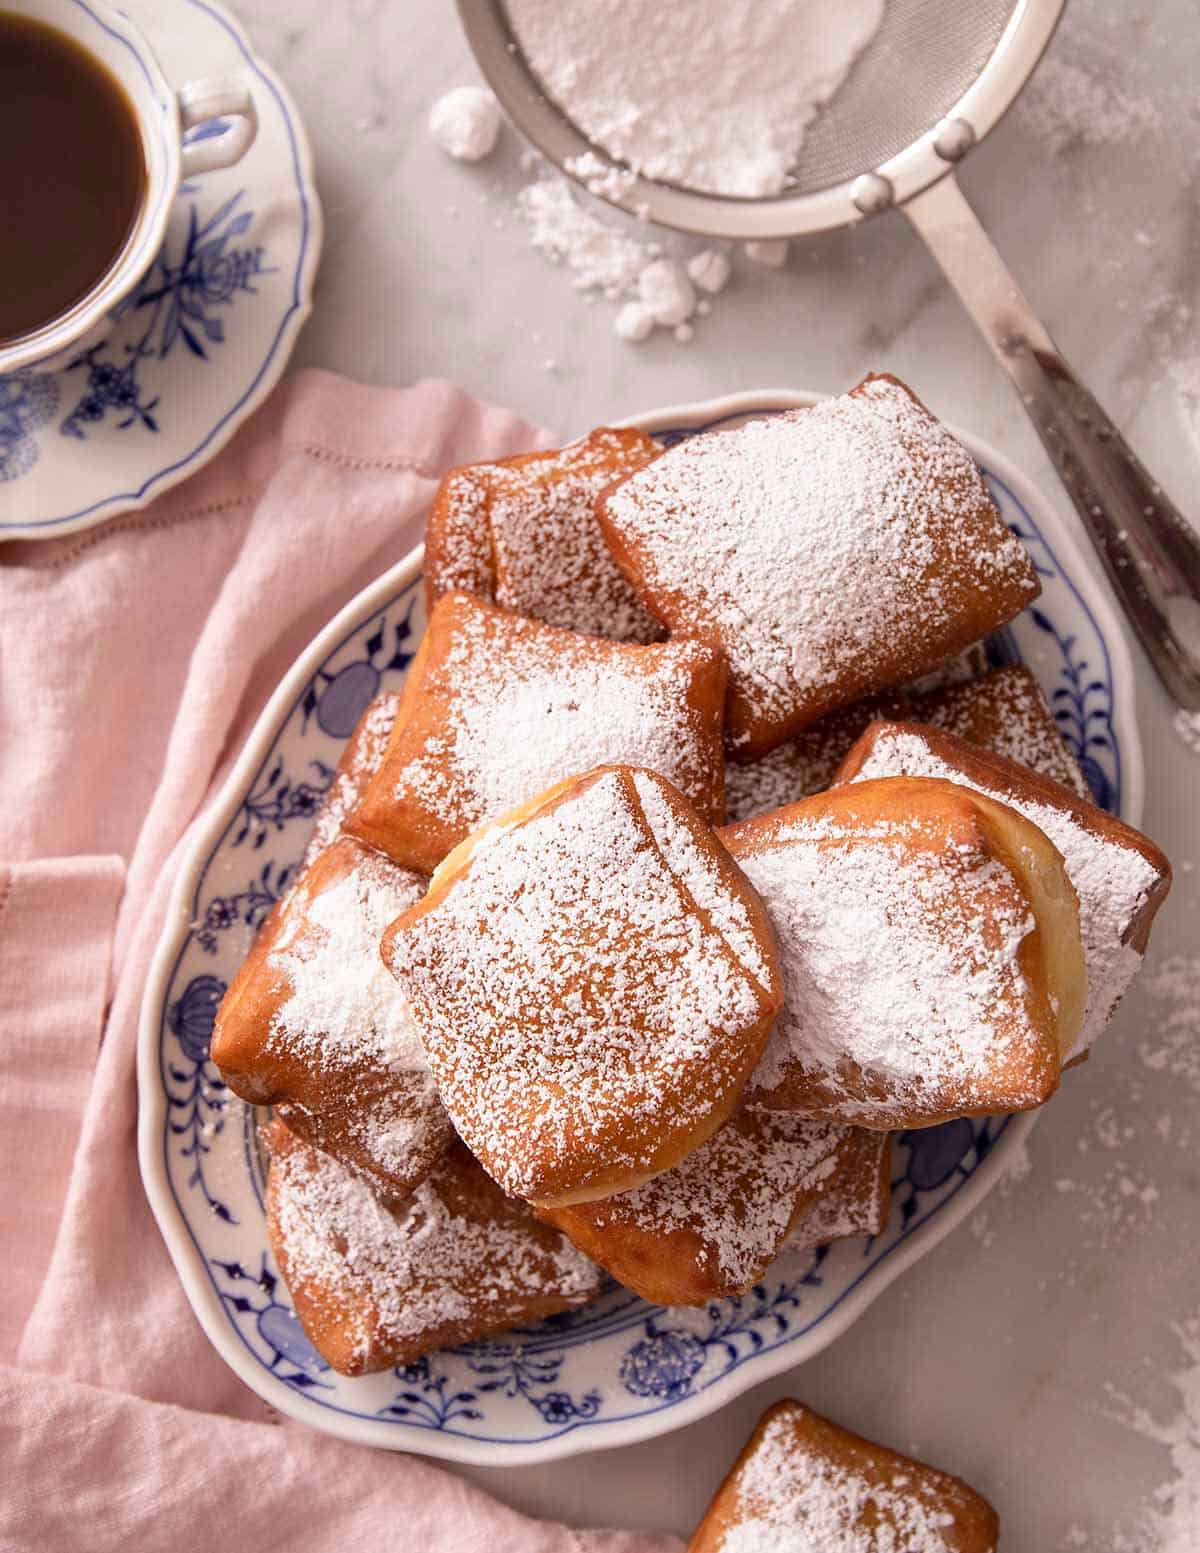 A pile of Beignets on a blue serving plate